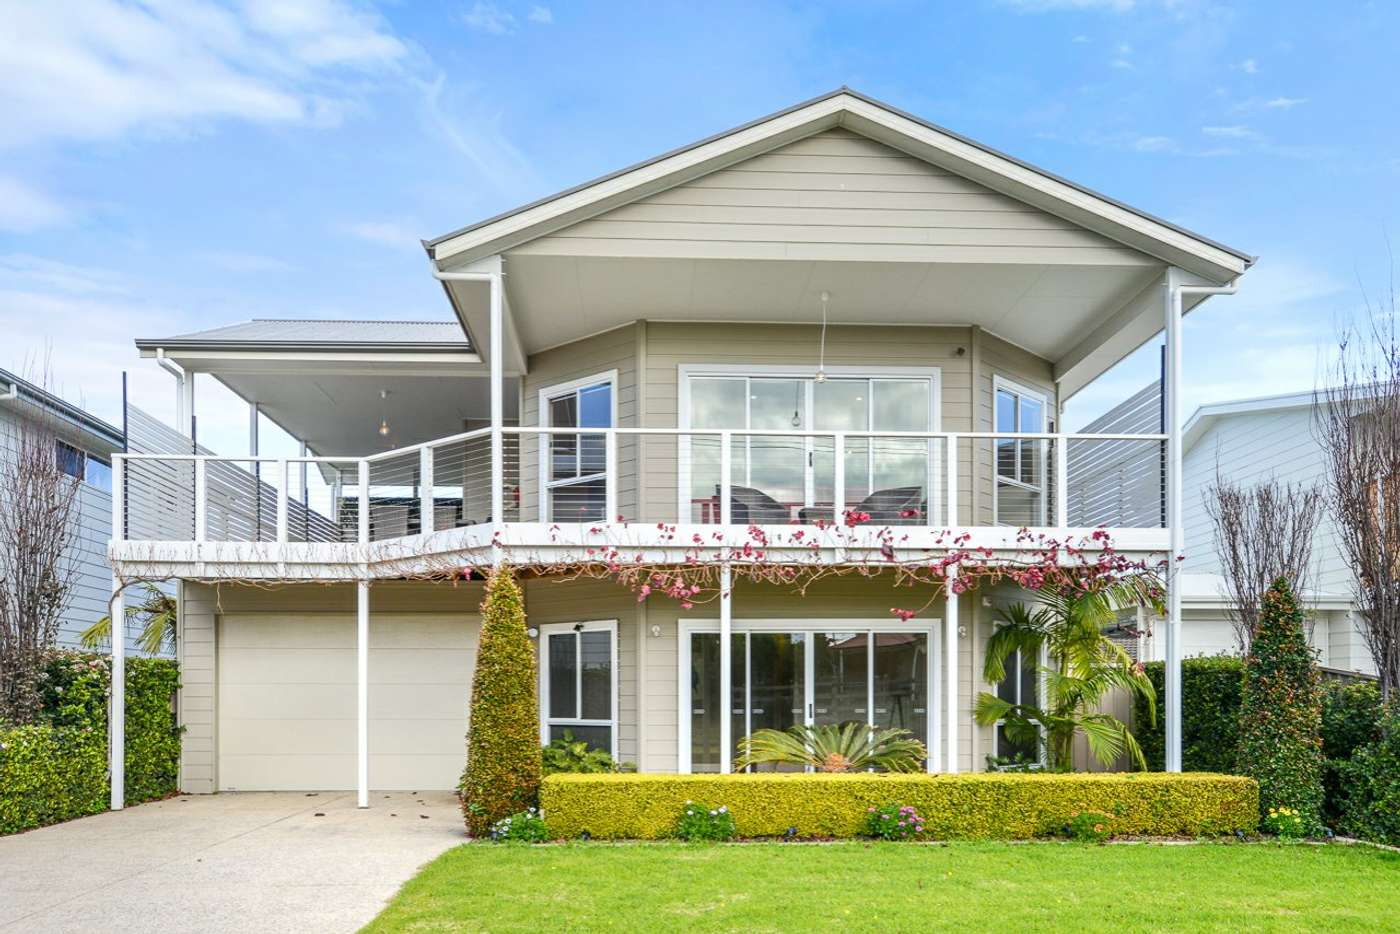 Main view of Homely house listing, 7A Tabernacle Road, Encounter Bay SA 5211